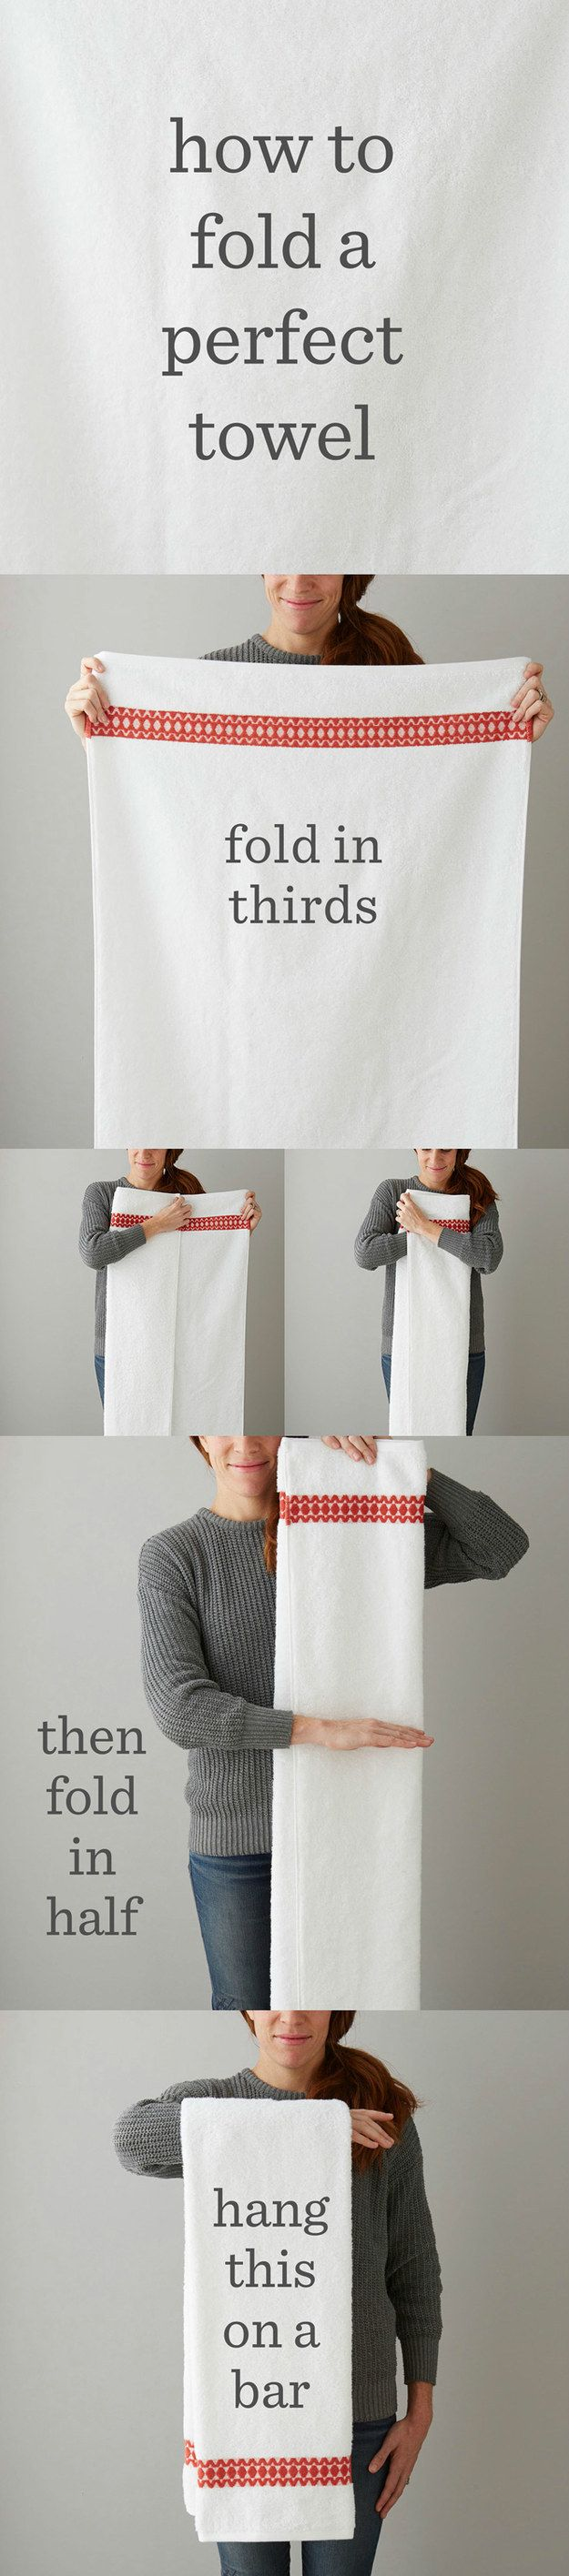 17 best ideas about folding bath towels on pinterest how